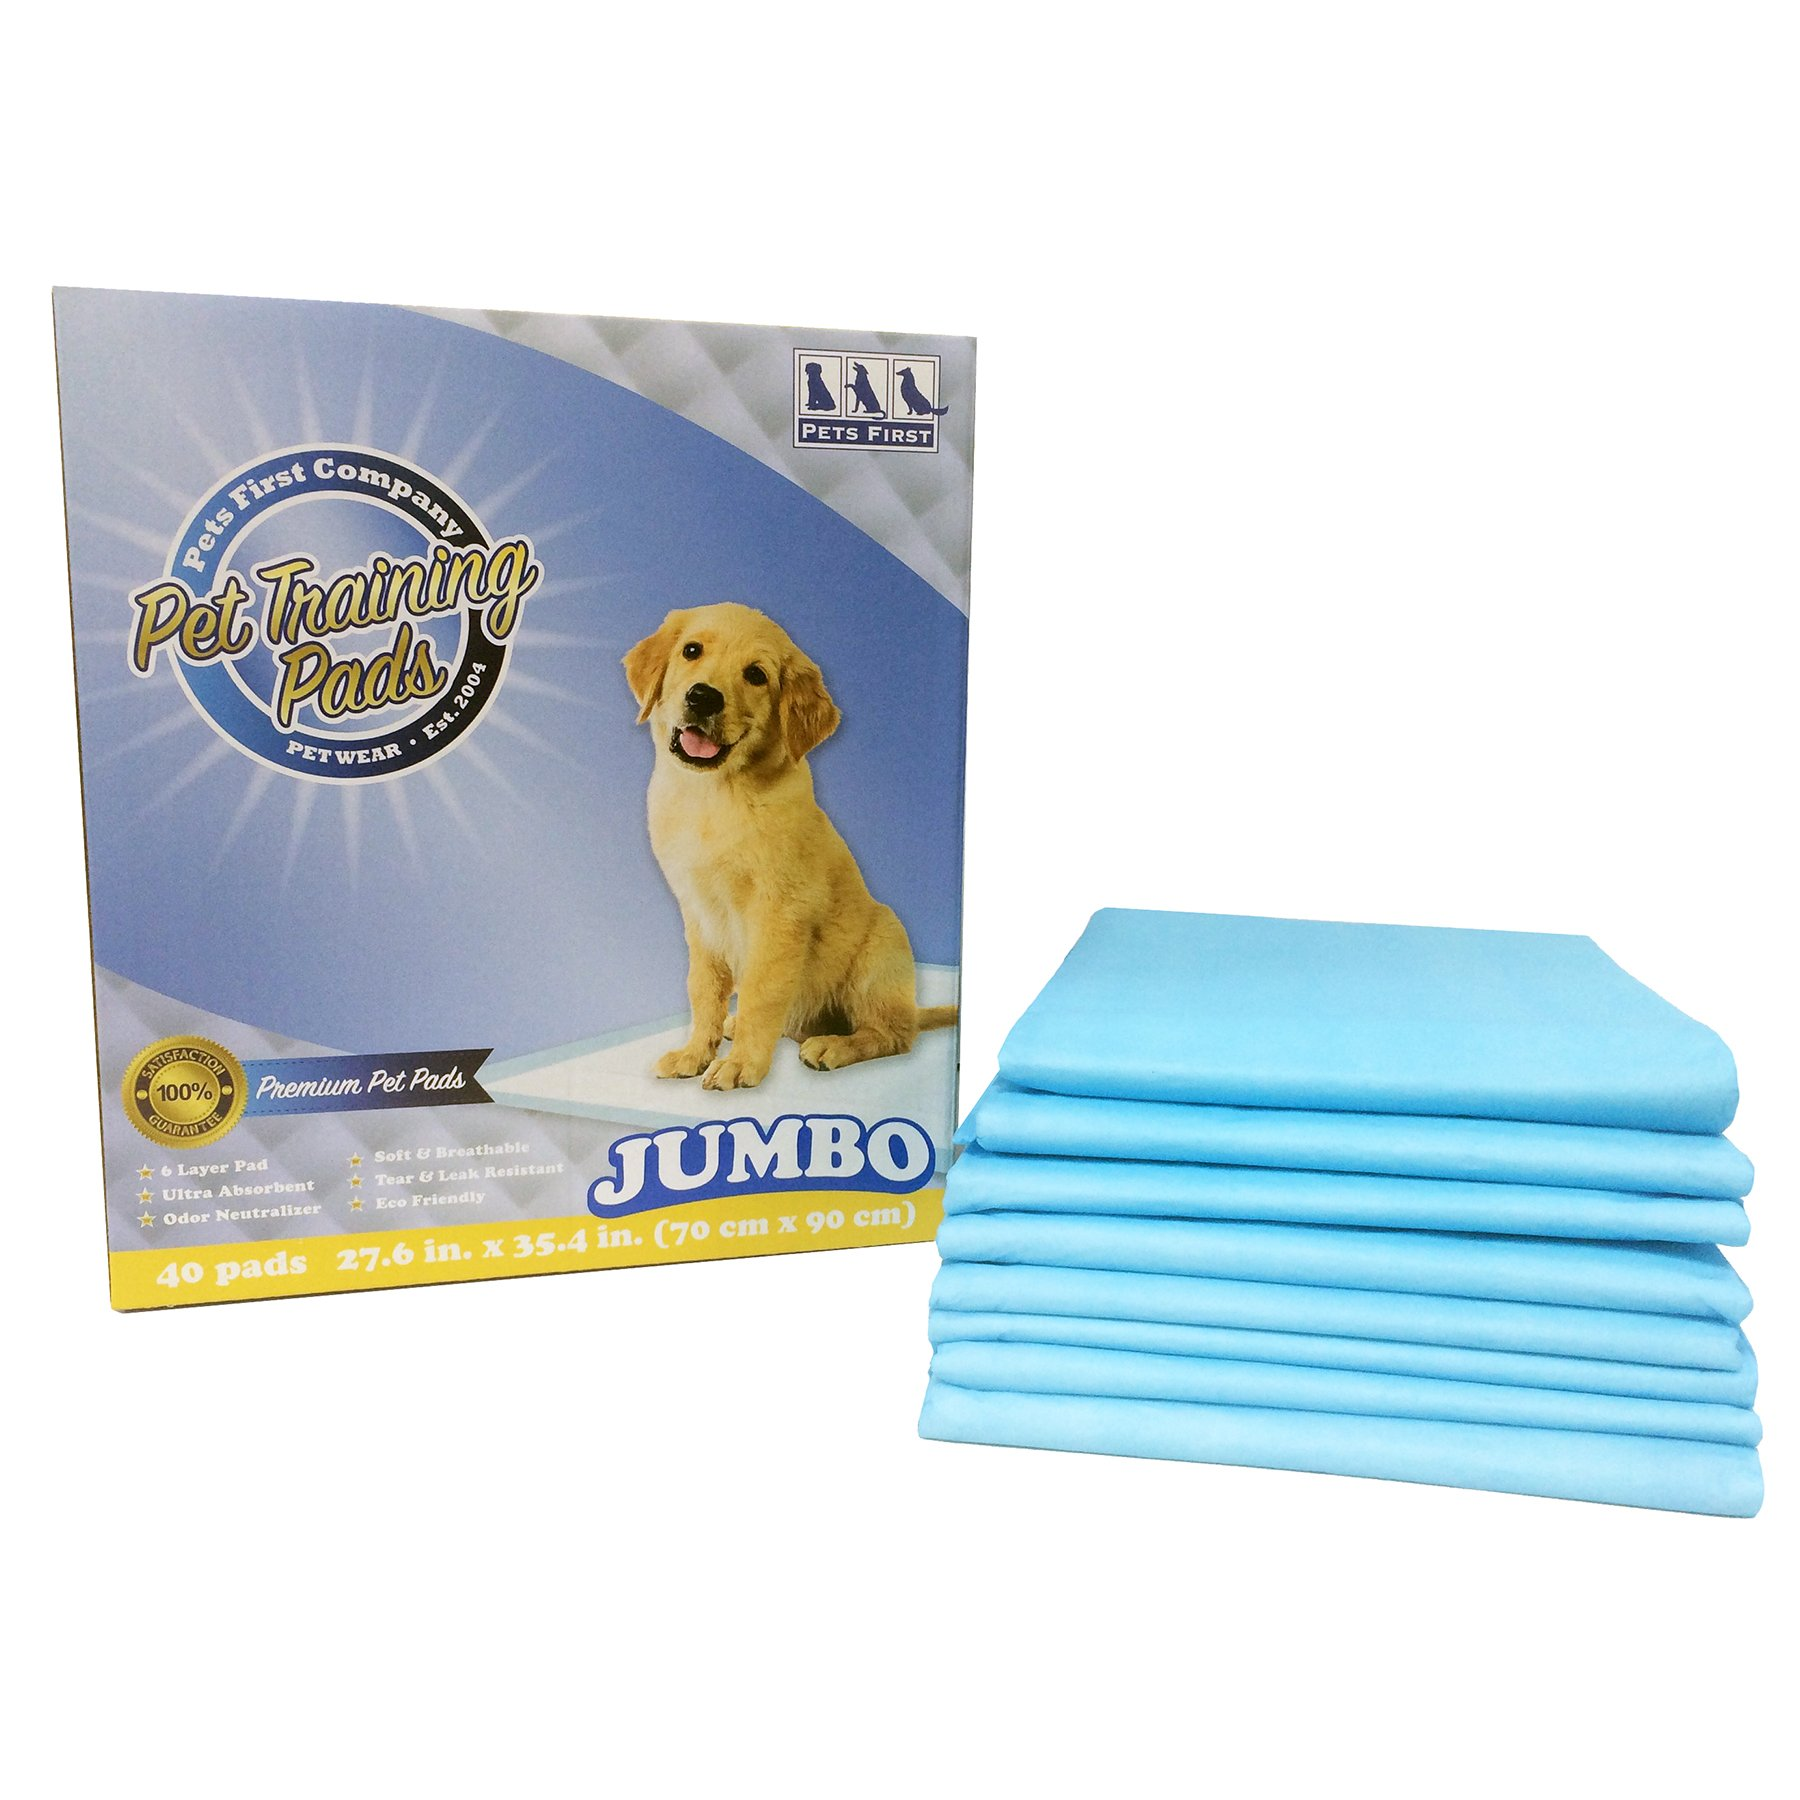 PREMIUM JUMBO TRAINING PADS (40 Count) Newest Version - MOST ABSORBENT Puppy Pads. Latest Tech XL DOG TRAINING PADS